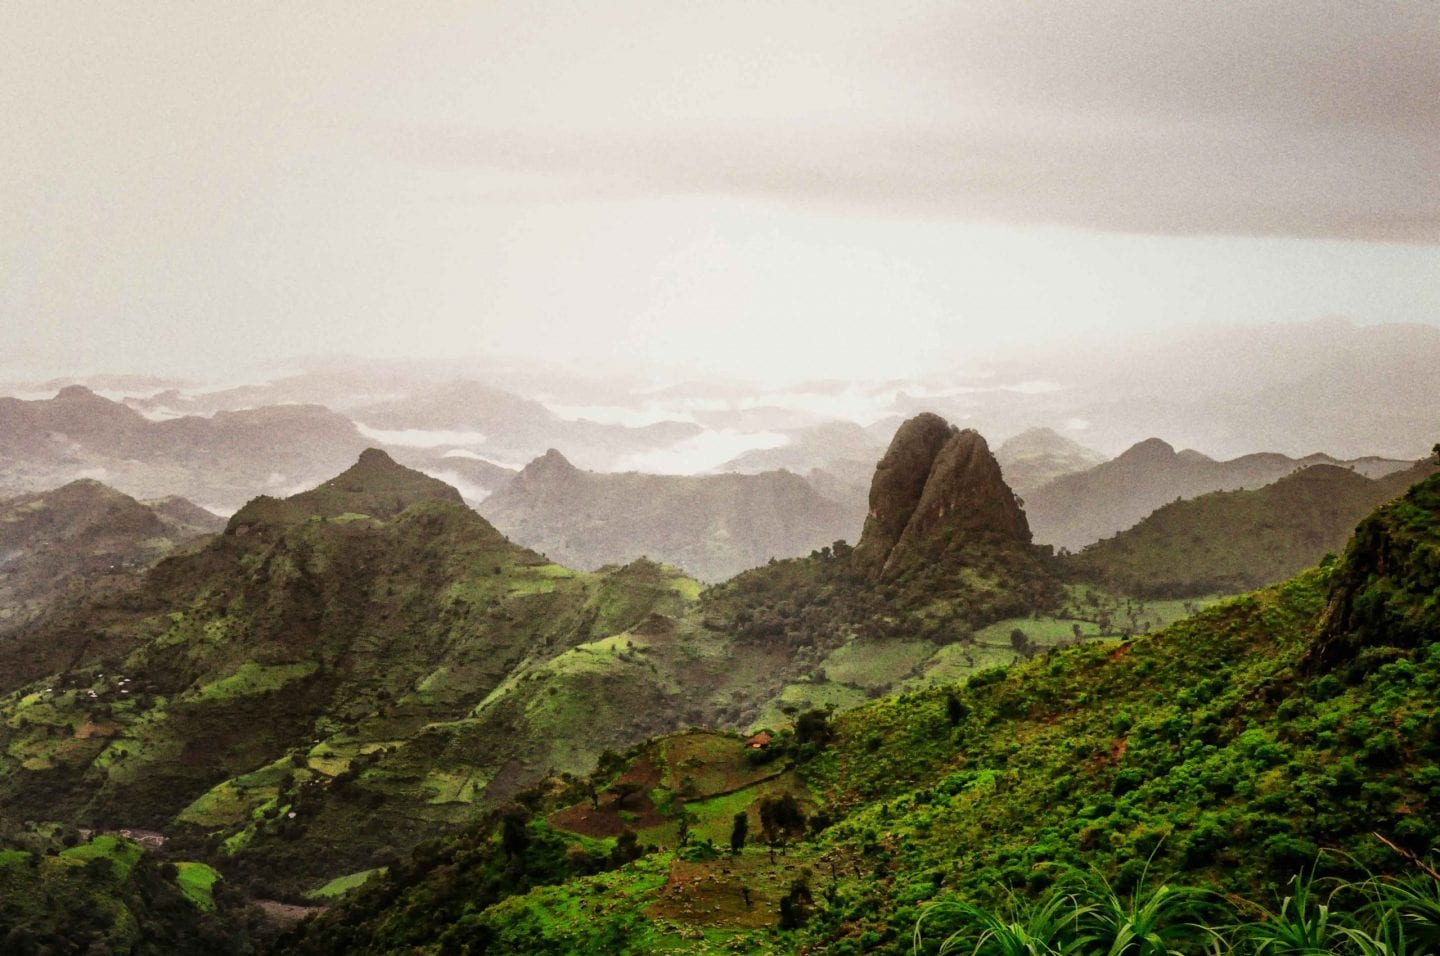 Things to know before visiting Ethiopia for the first time